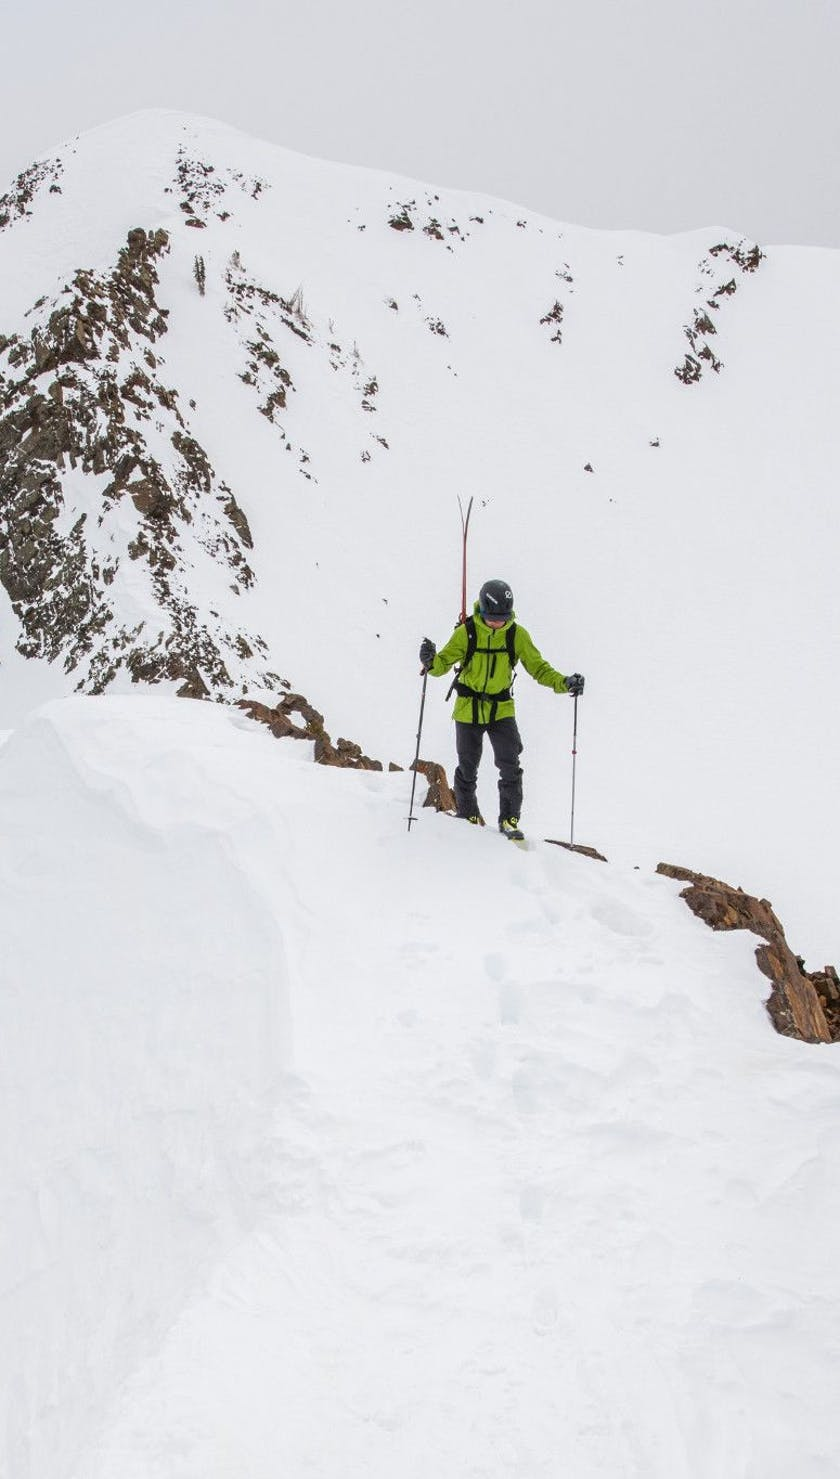 Person out ski touring